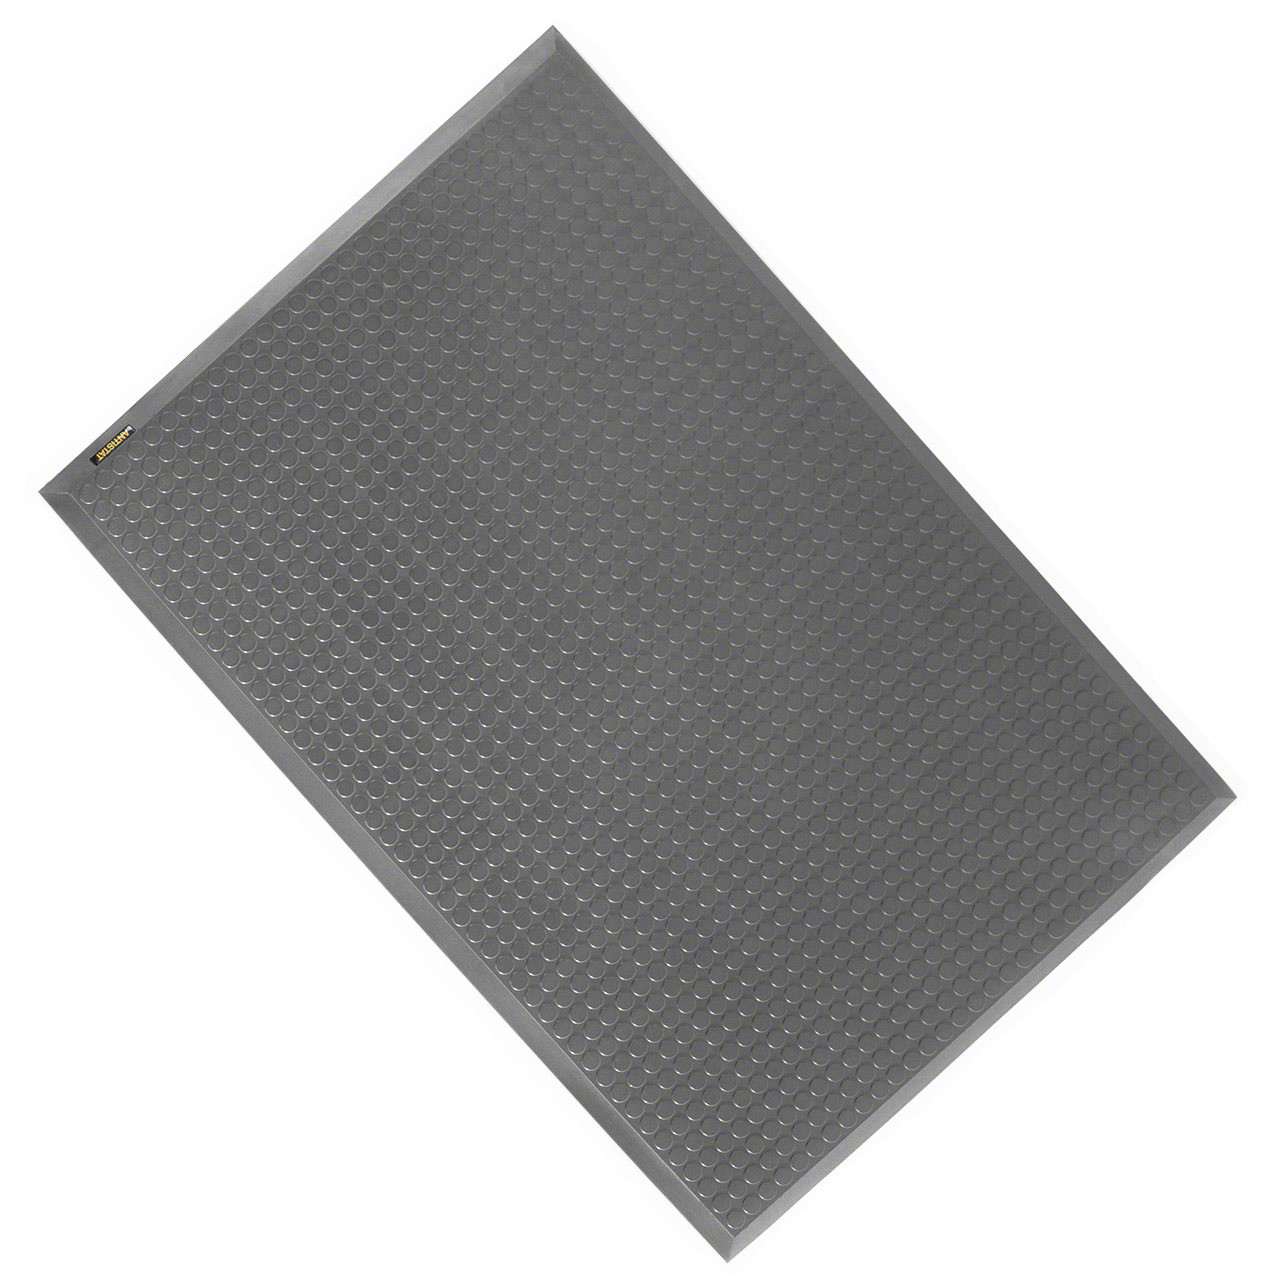 Available in several different sizes, this matting can be a lifesaver for people who stand all day